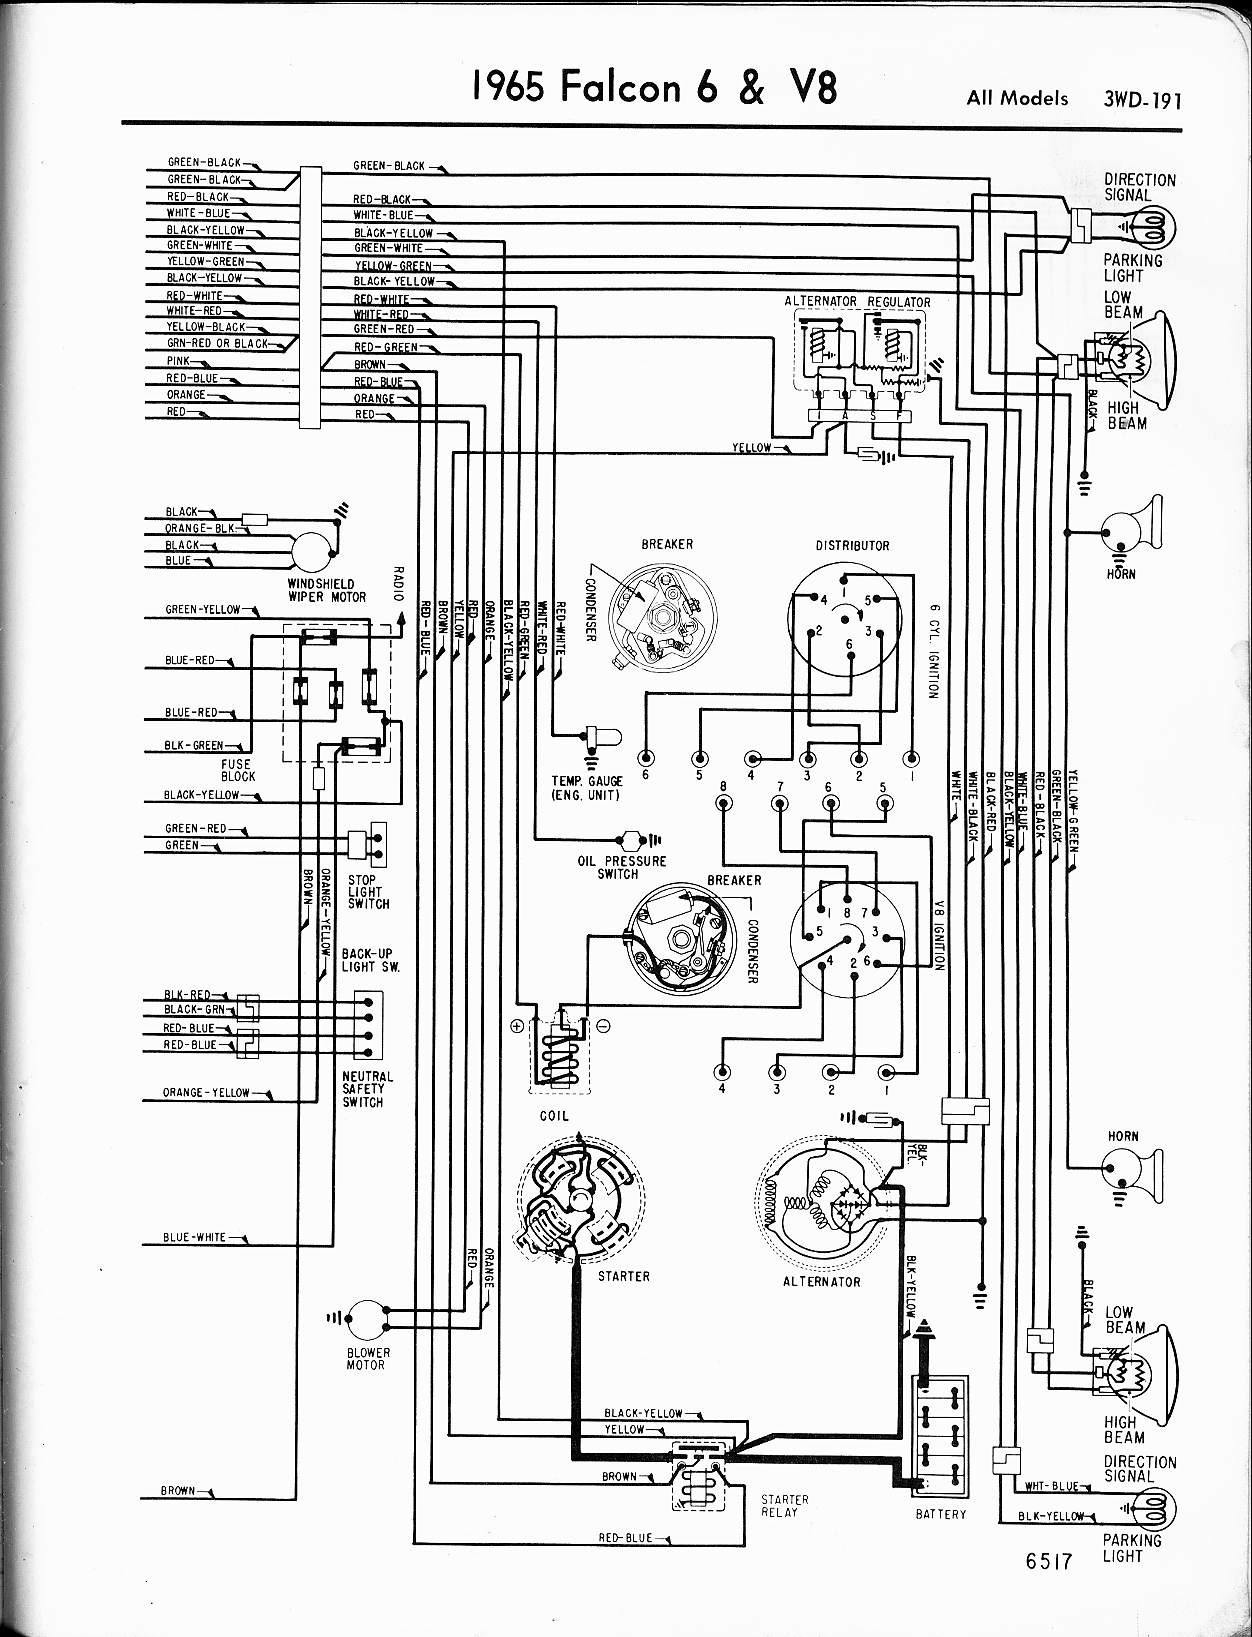 Ford 6 0 Engine Diagram Alternator Wiring Diagram ford Ranchero Get Free Image About Wiring Of Ford 6 0 Engine Diagram